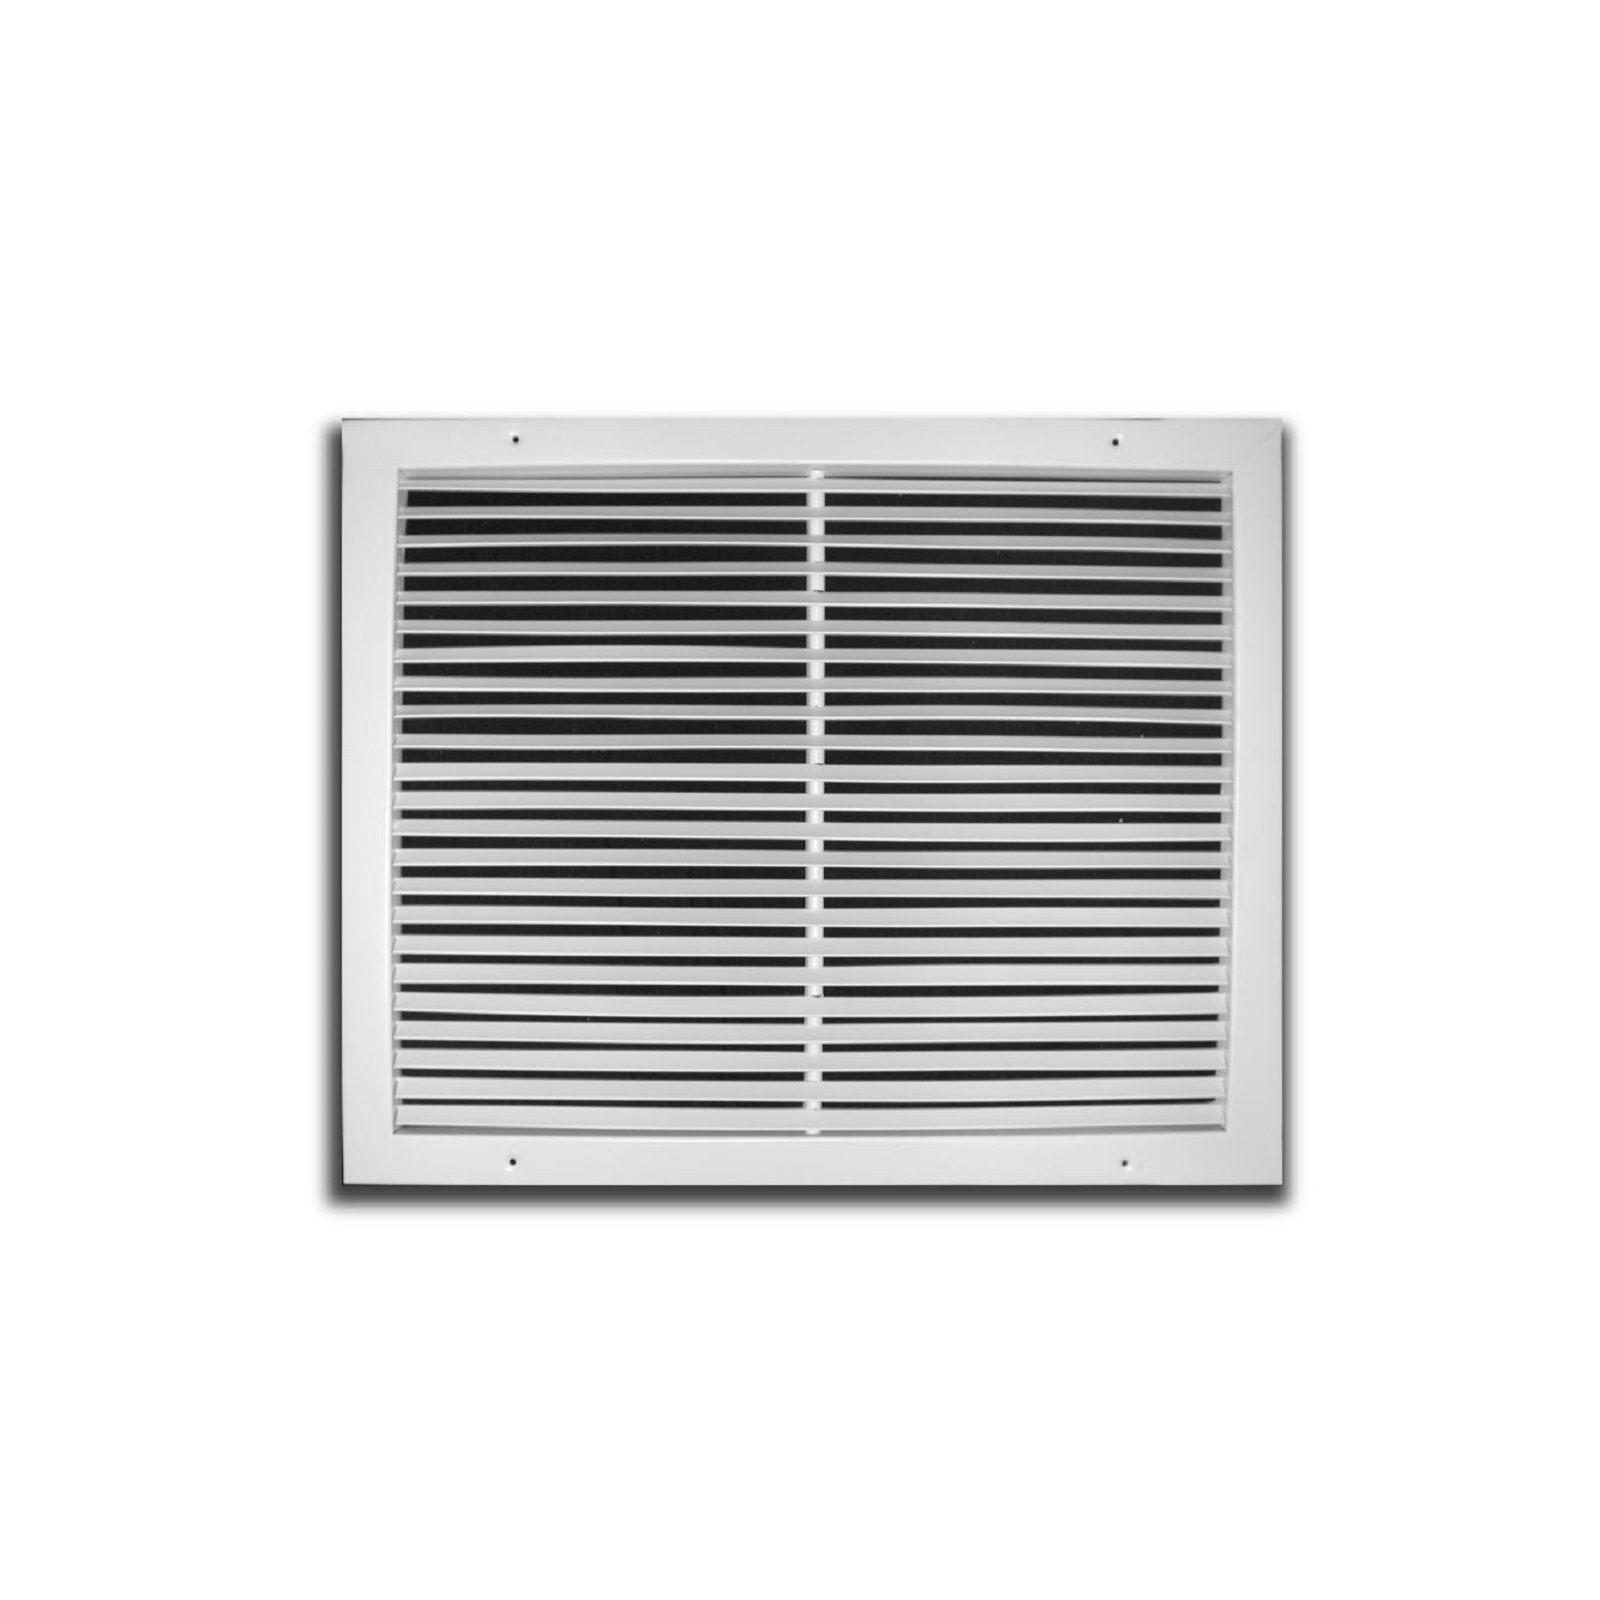 "TRUaire 270 08X06 - Steel Fixed Bar Return Air Grille, White, 08"" X 06"""